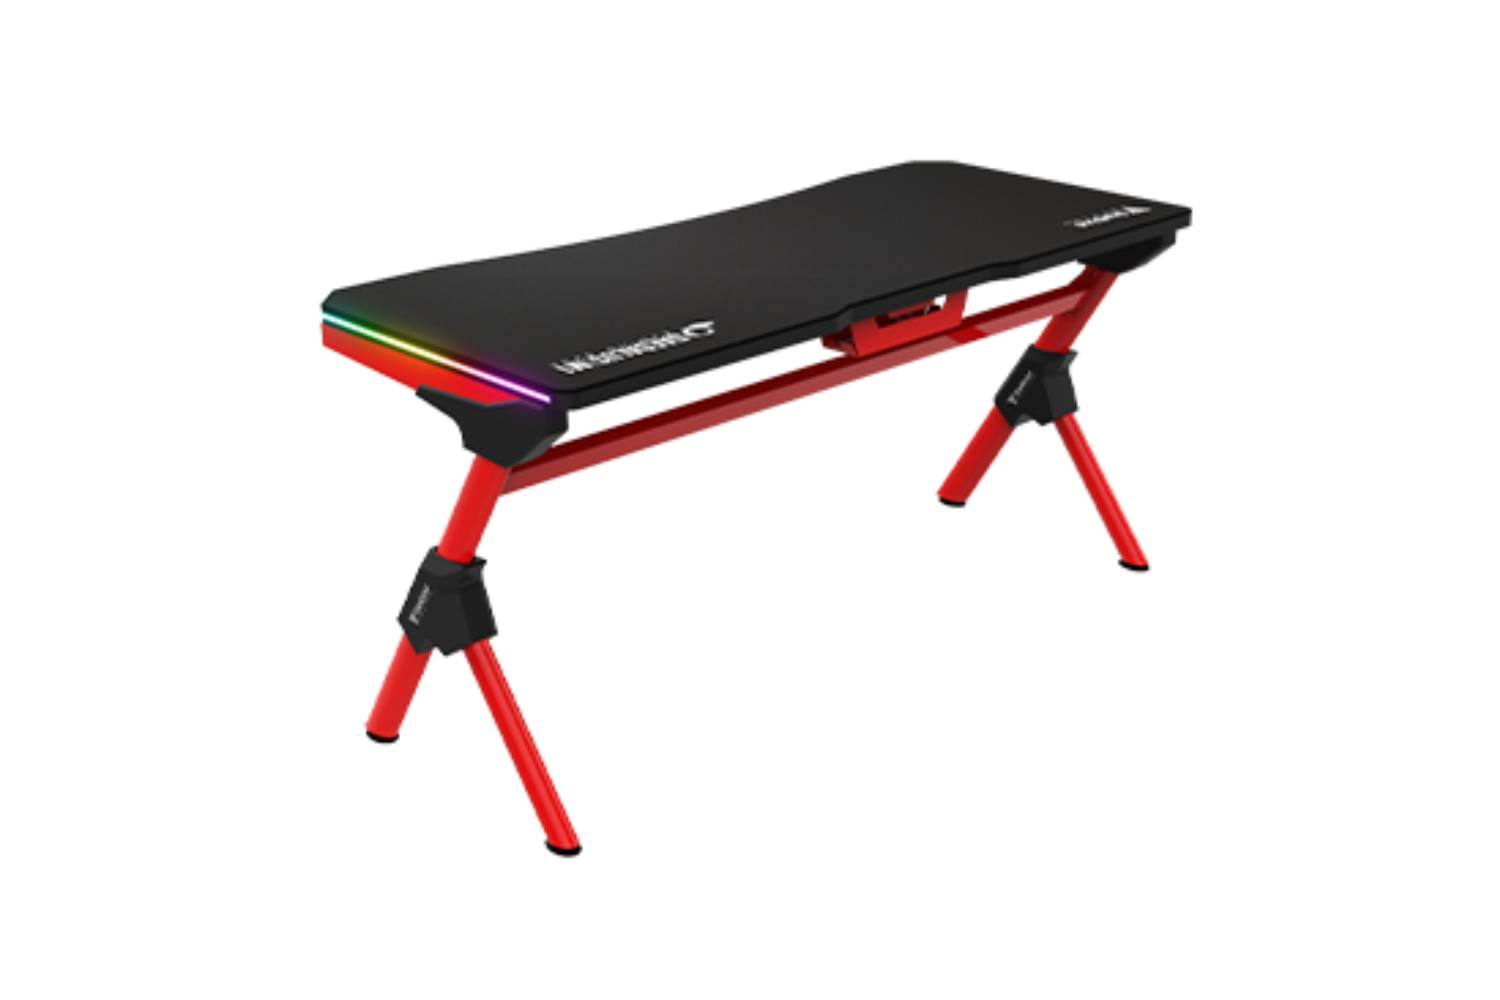 Gamdias DAEDALUS M2 RGB Gaming Desk